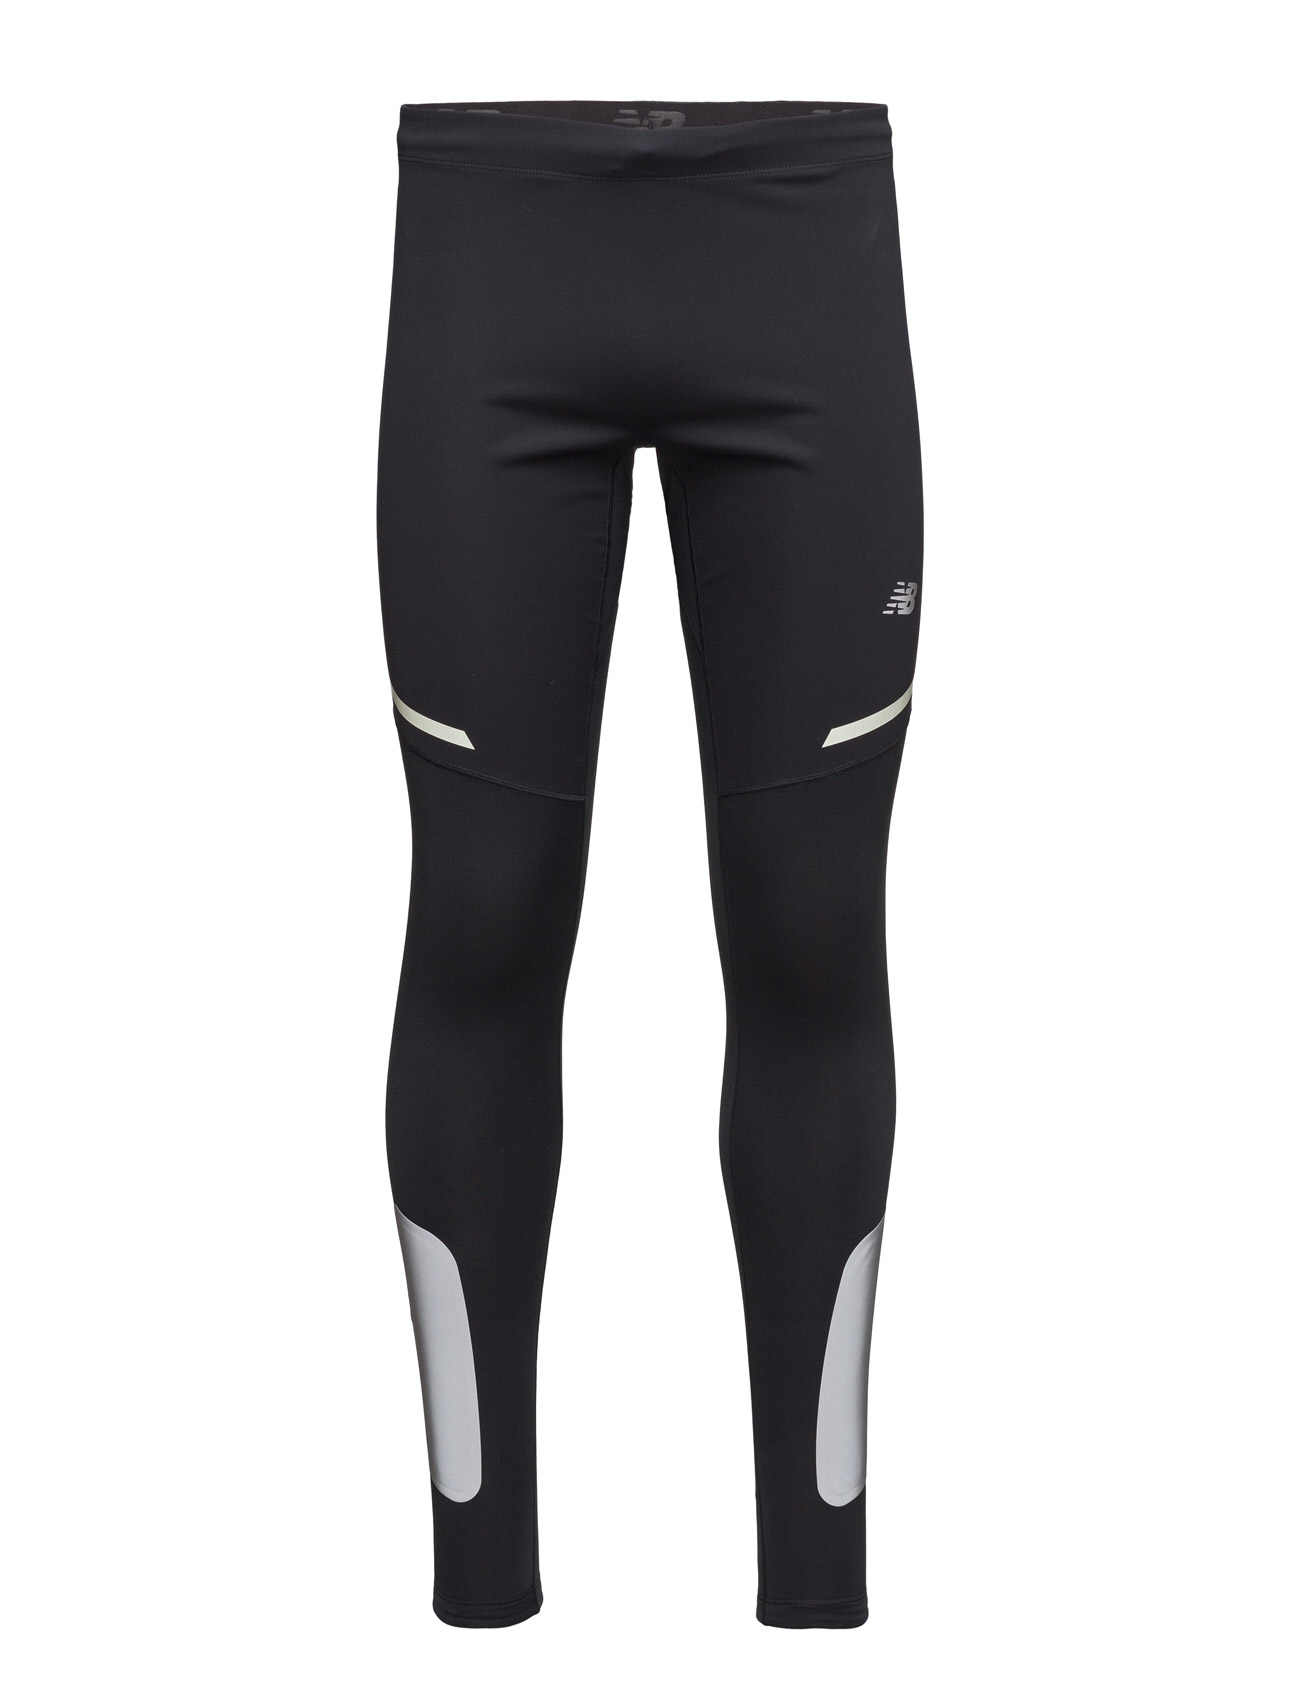 Windblocker Tight New Balance Løbe tights til Mænd i Sort